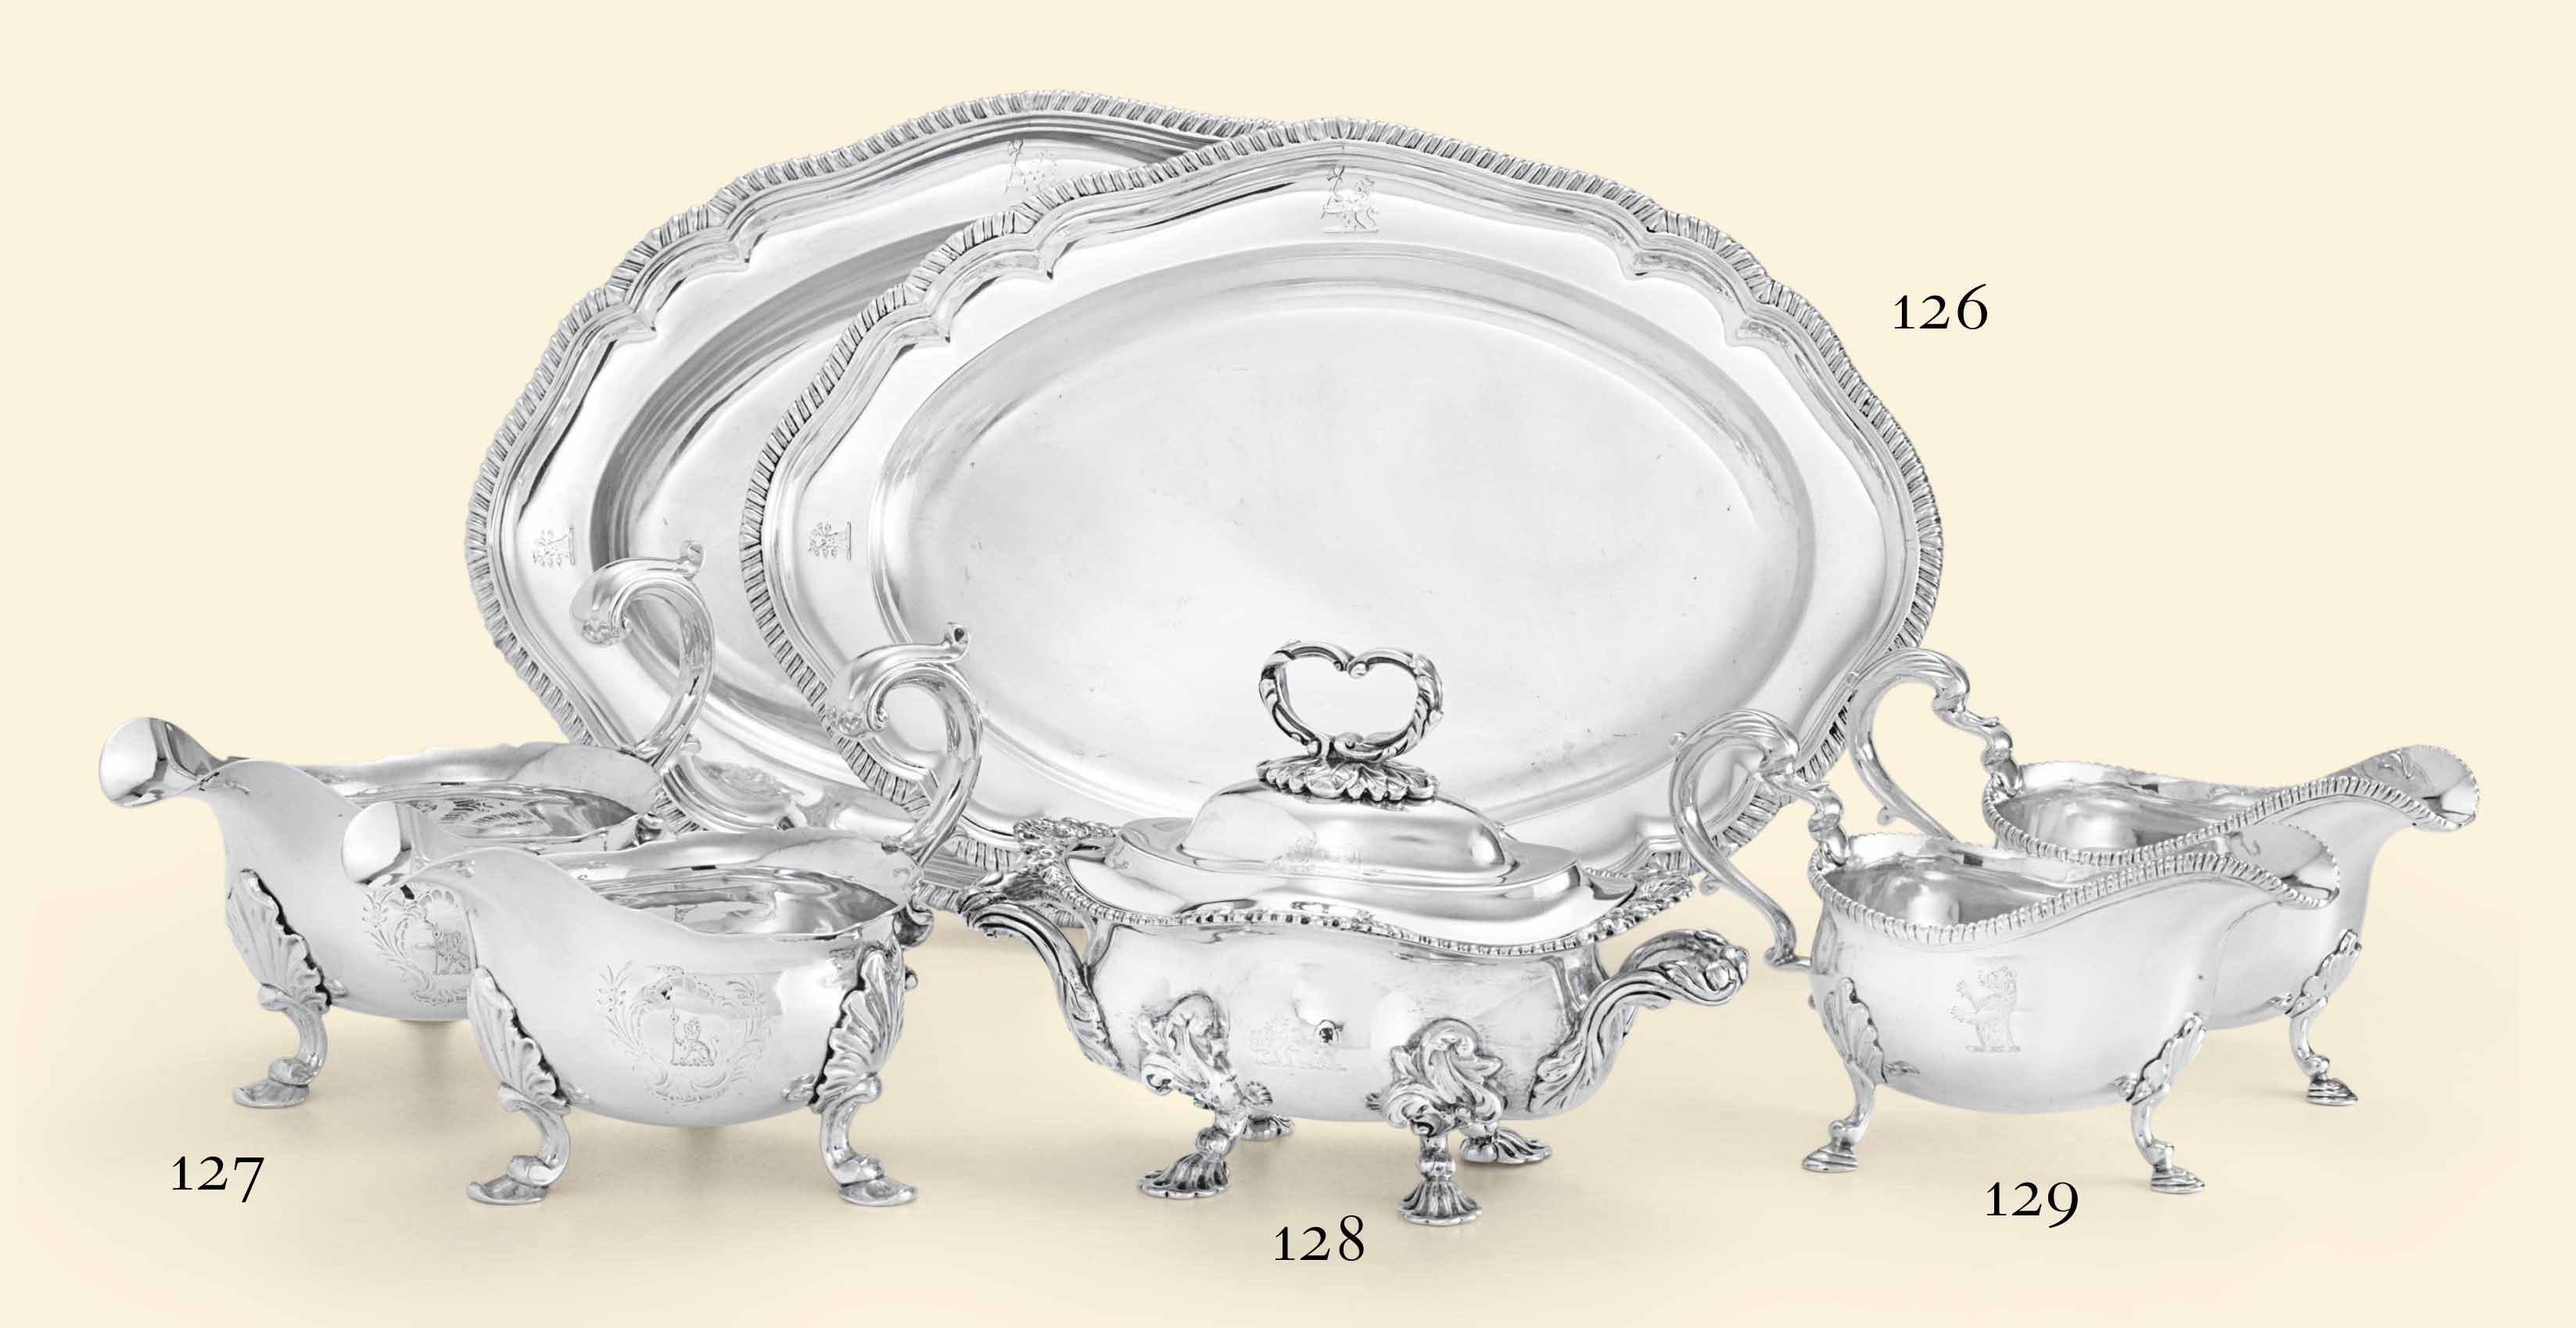 A PAIR OF GEORGE III SILVER SAUCE BOATS